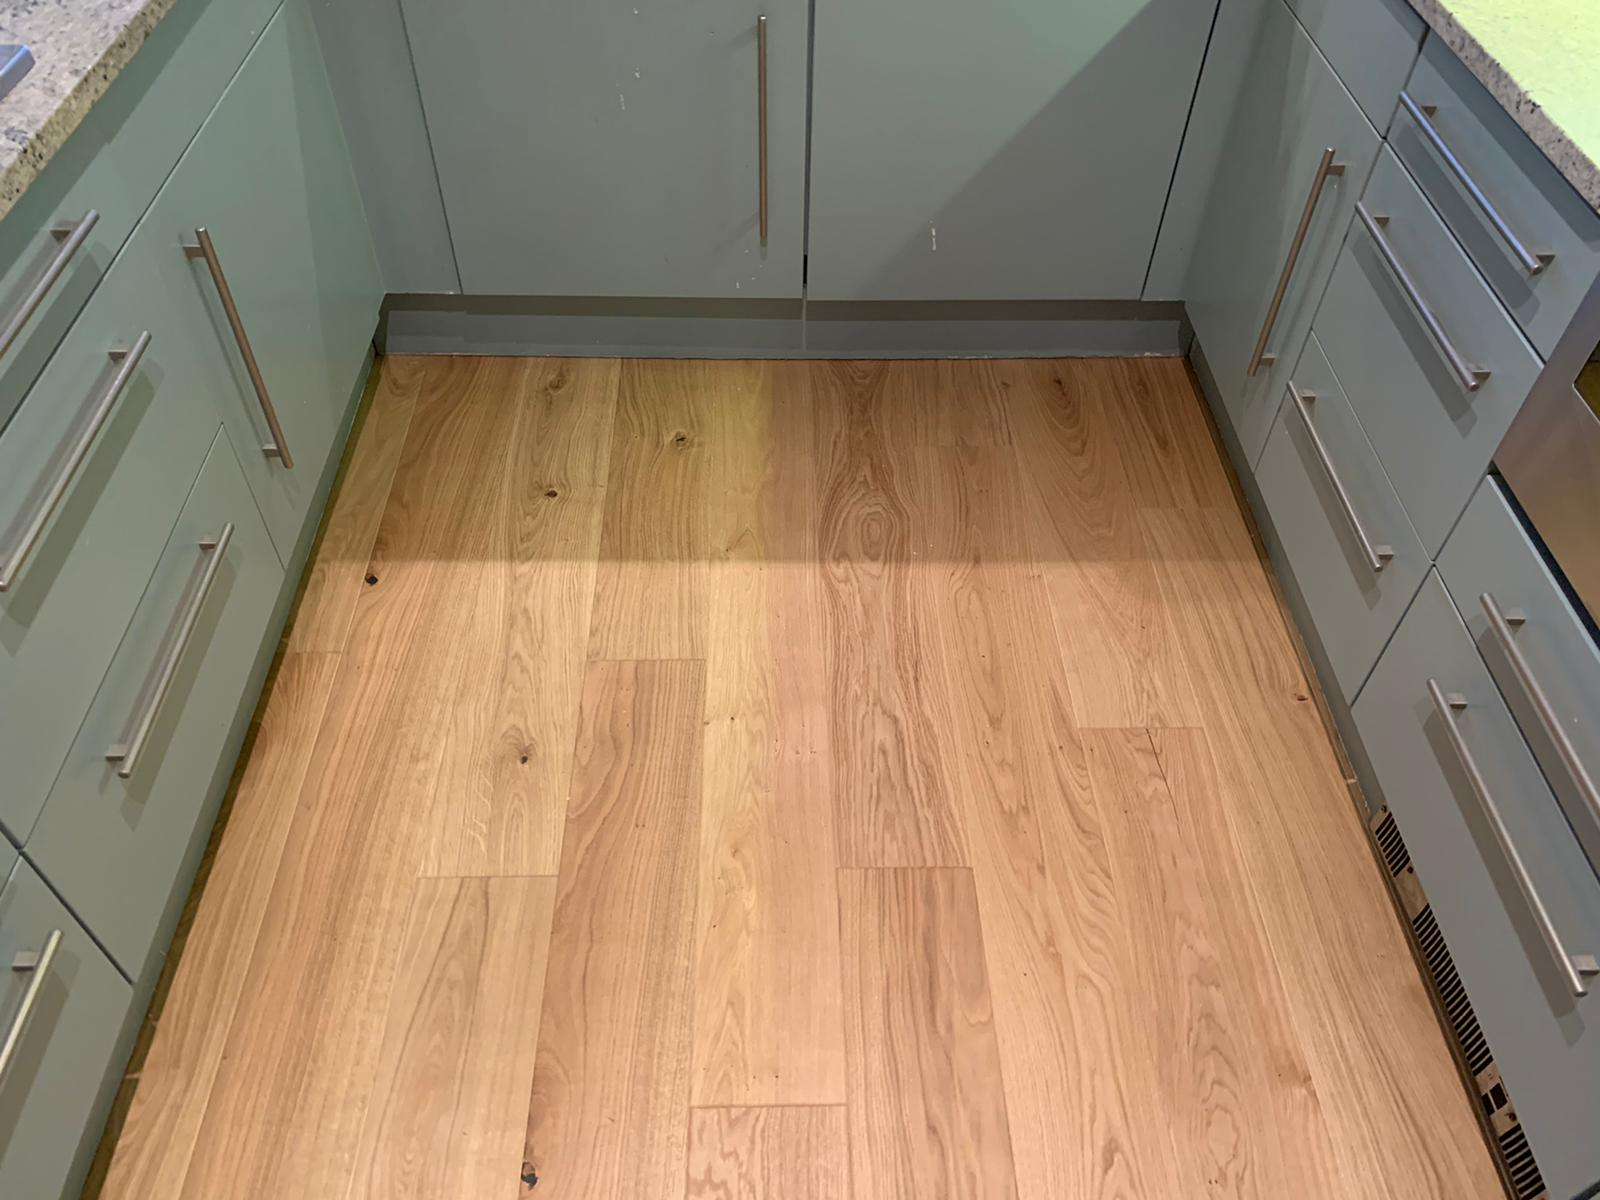 Kersaint Cobb hardwood flooring in Barnes 10